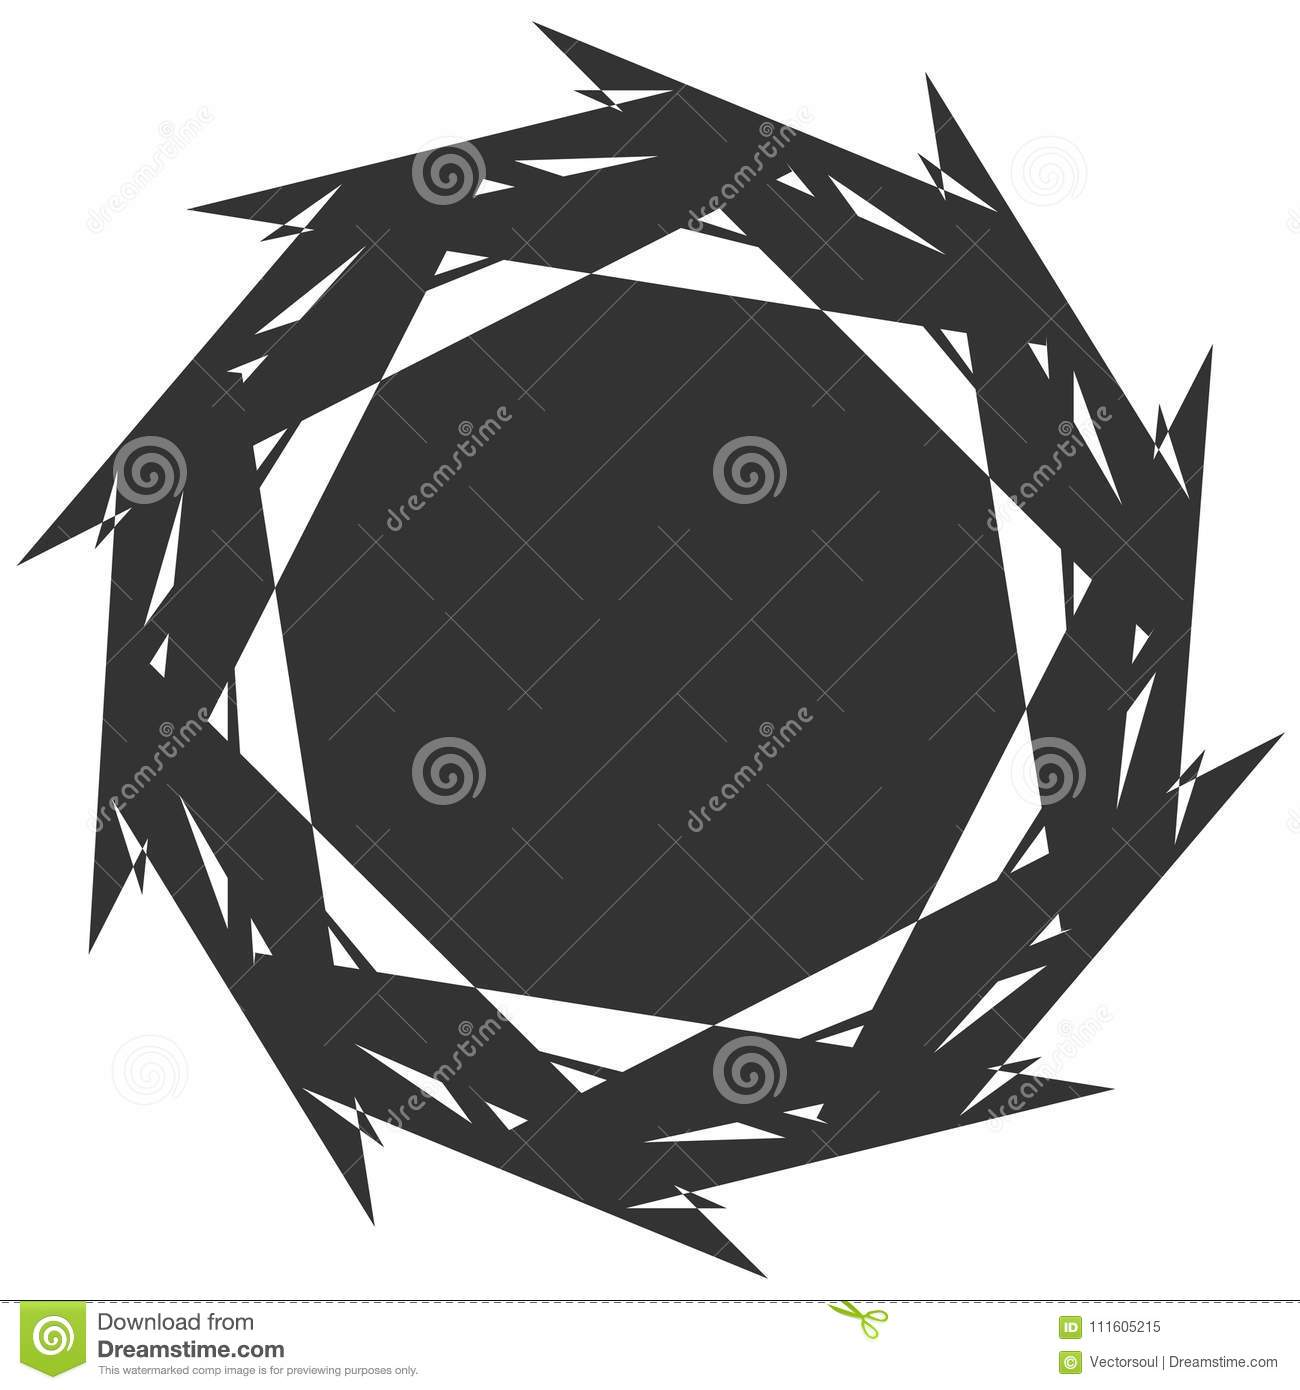 Circular, radial abstract element on white. Radiating shape with